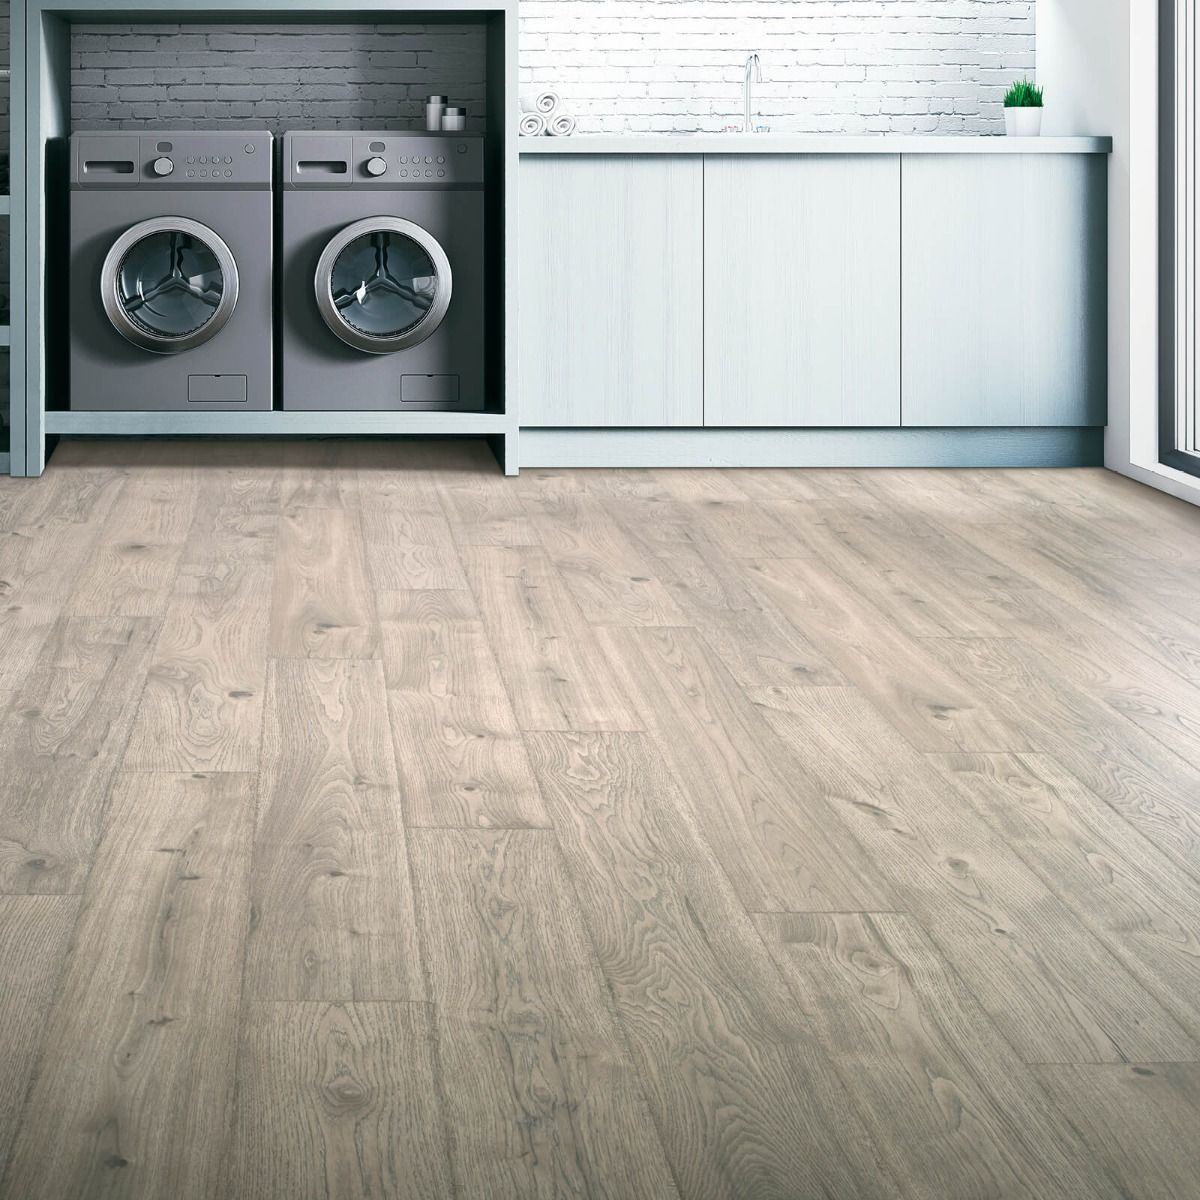 5 Flooring Options for Homes with Pets in 2020 (With